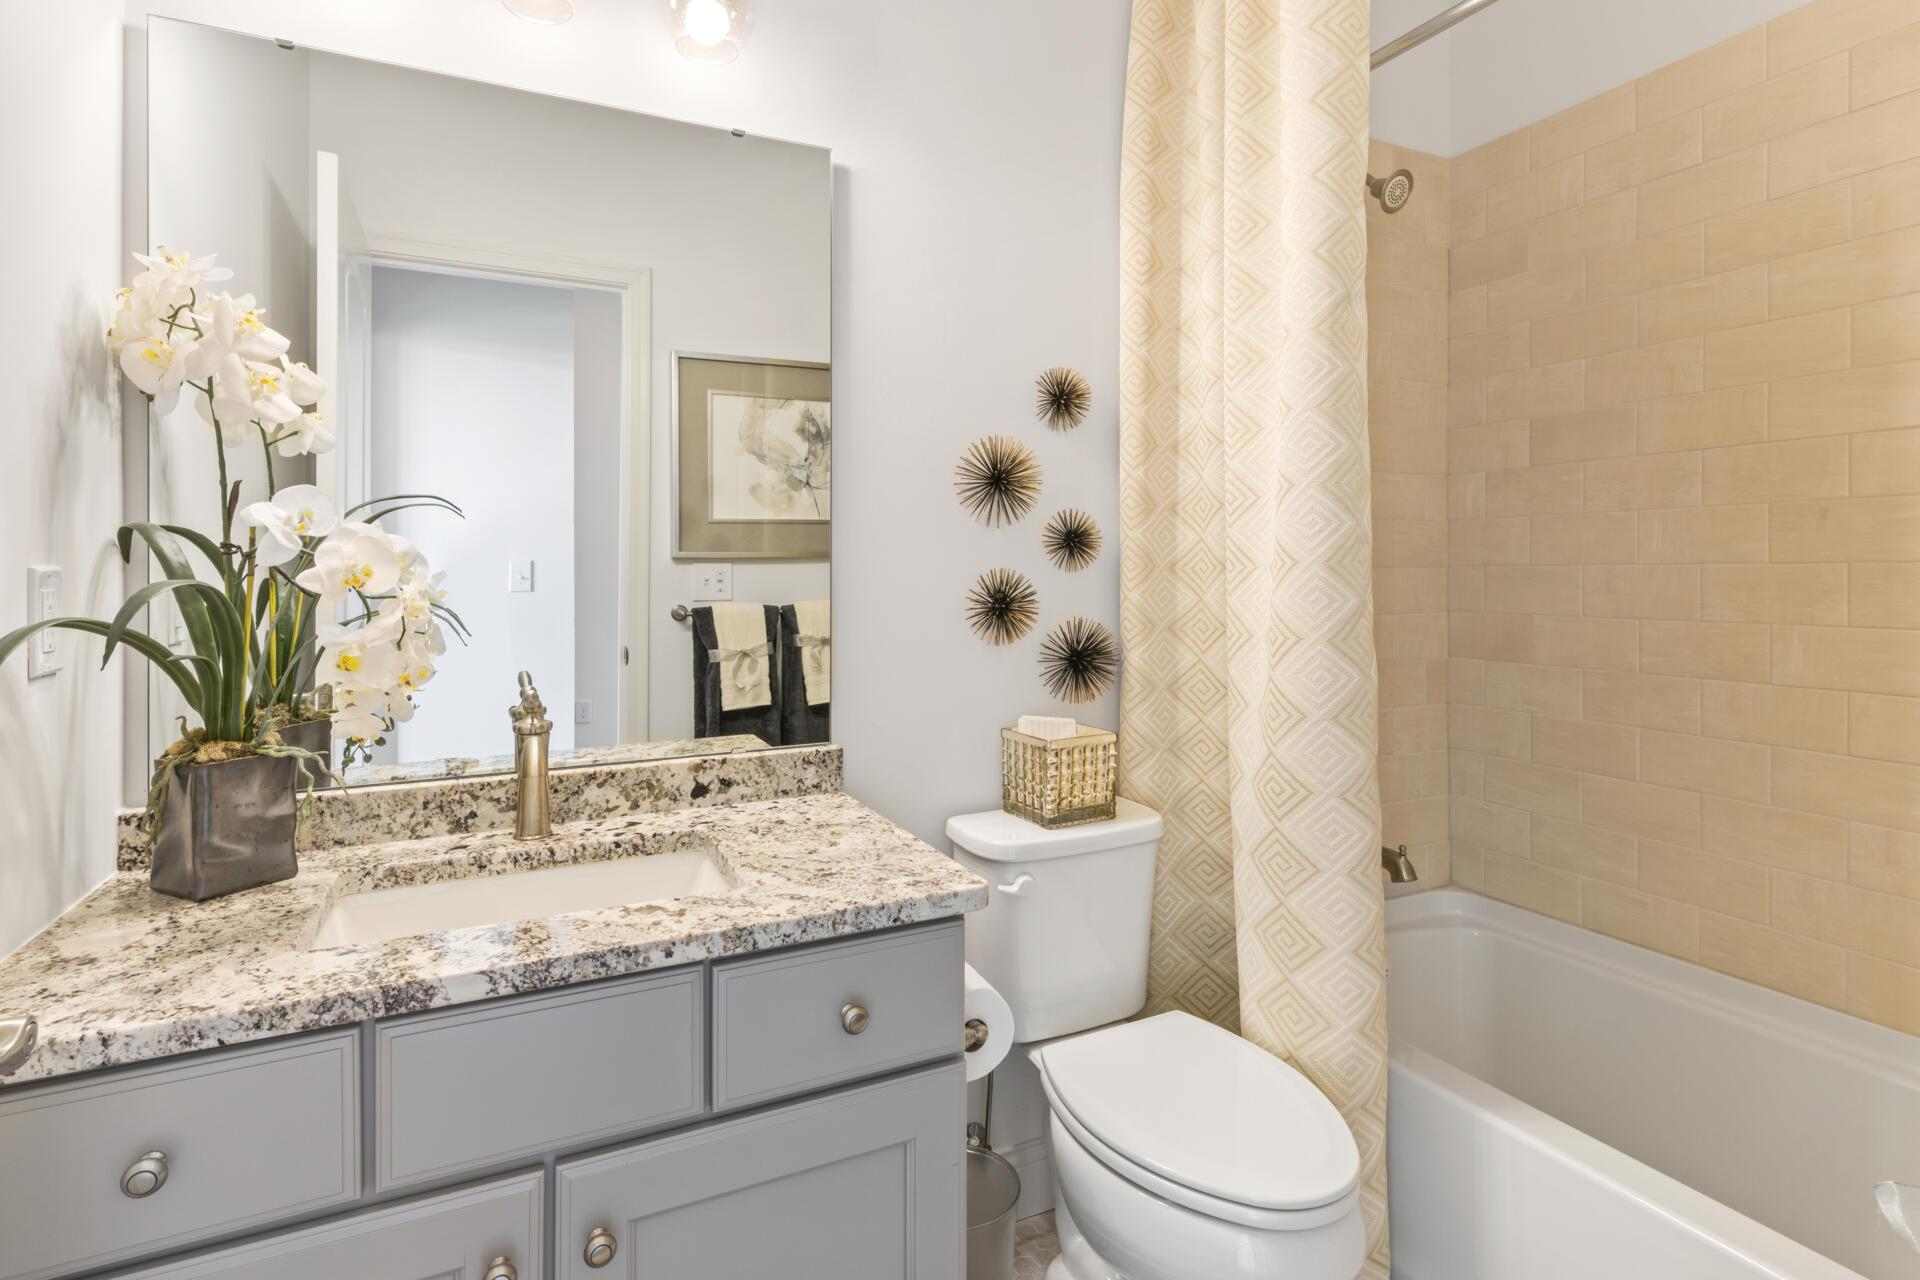 Bathroom featured in the Sarasota By Drees Homes in Indianapolis, IN